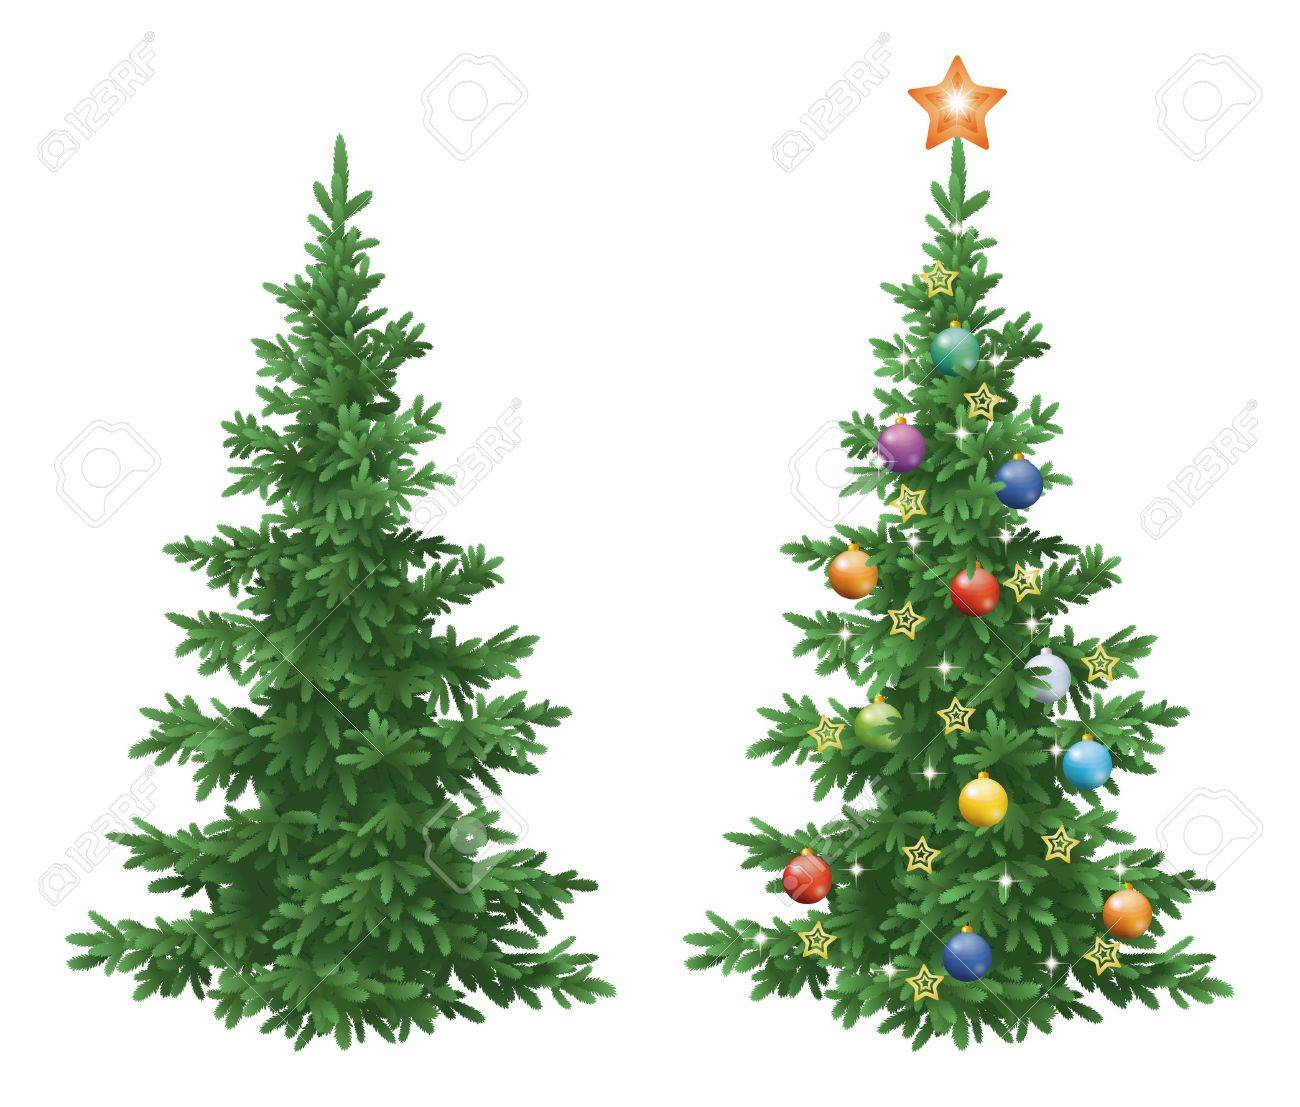 Christmas holiday spruce fir trees, natural and with ornaments, colorful balls and golden stars isolated on white background. Eps10, contains transparencies. Vector - 31589049